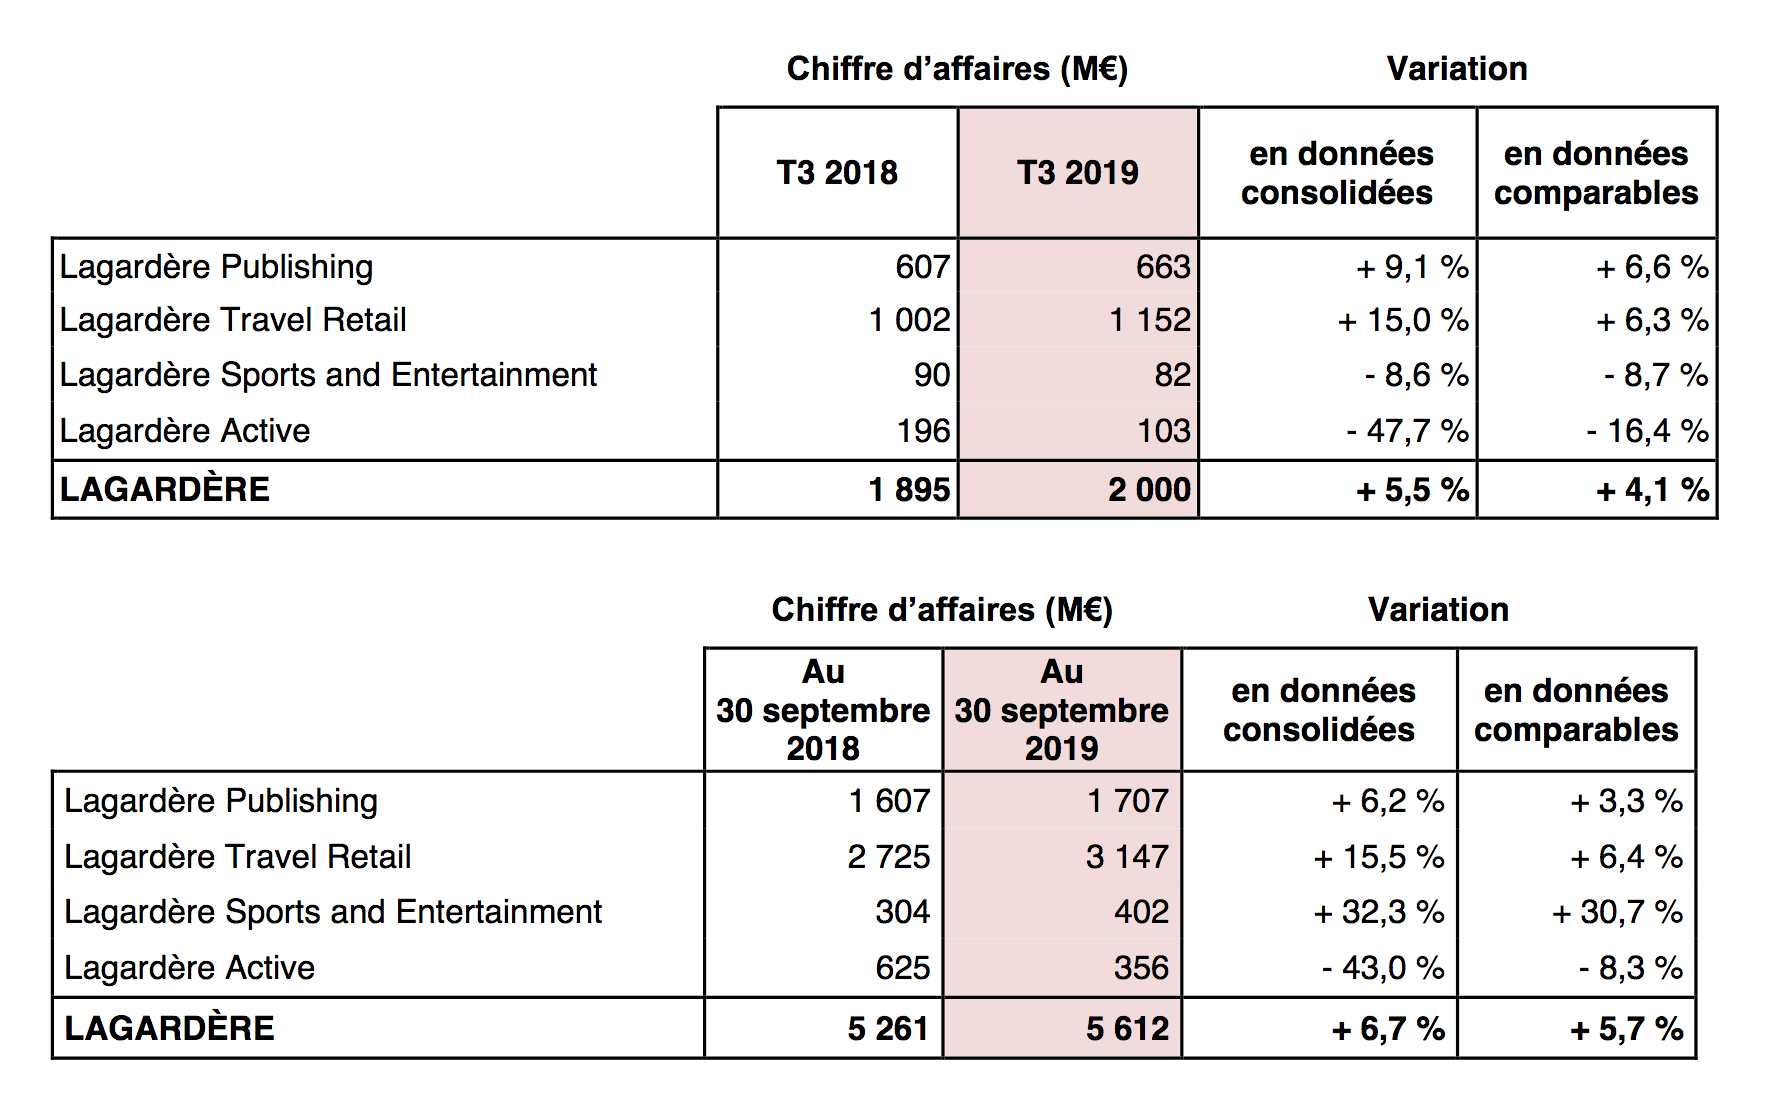 La baisse des audiences d'Europe 1 impacte le C.A. de Lagardère Active